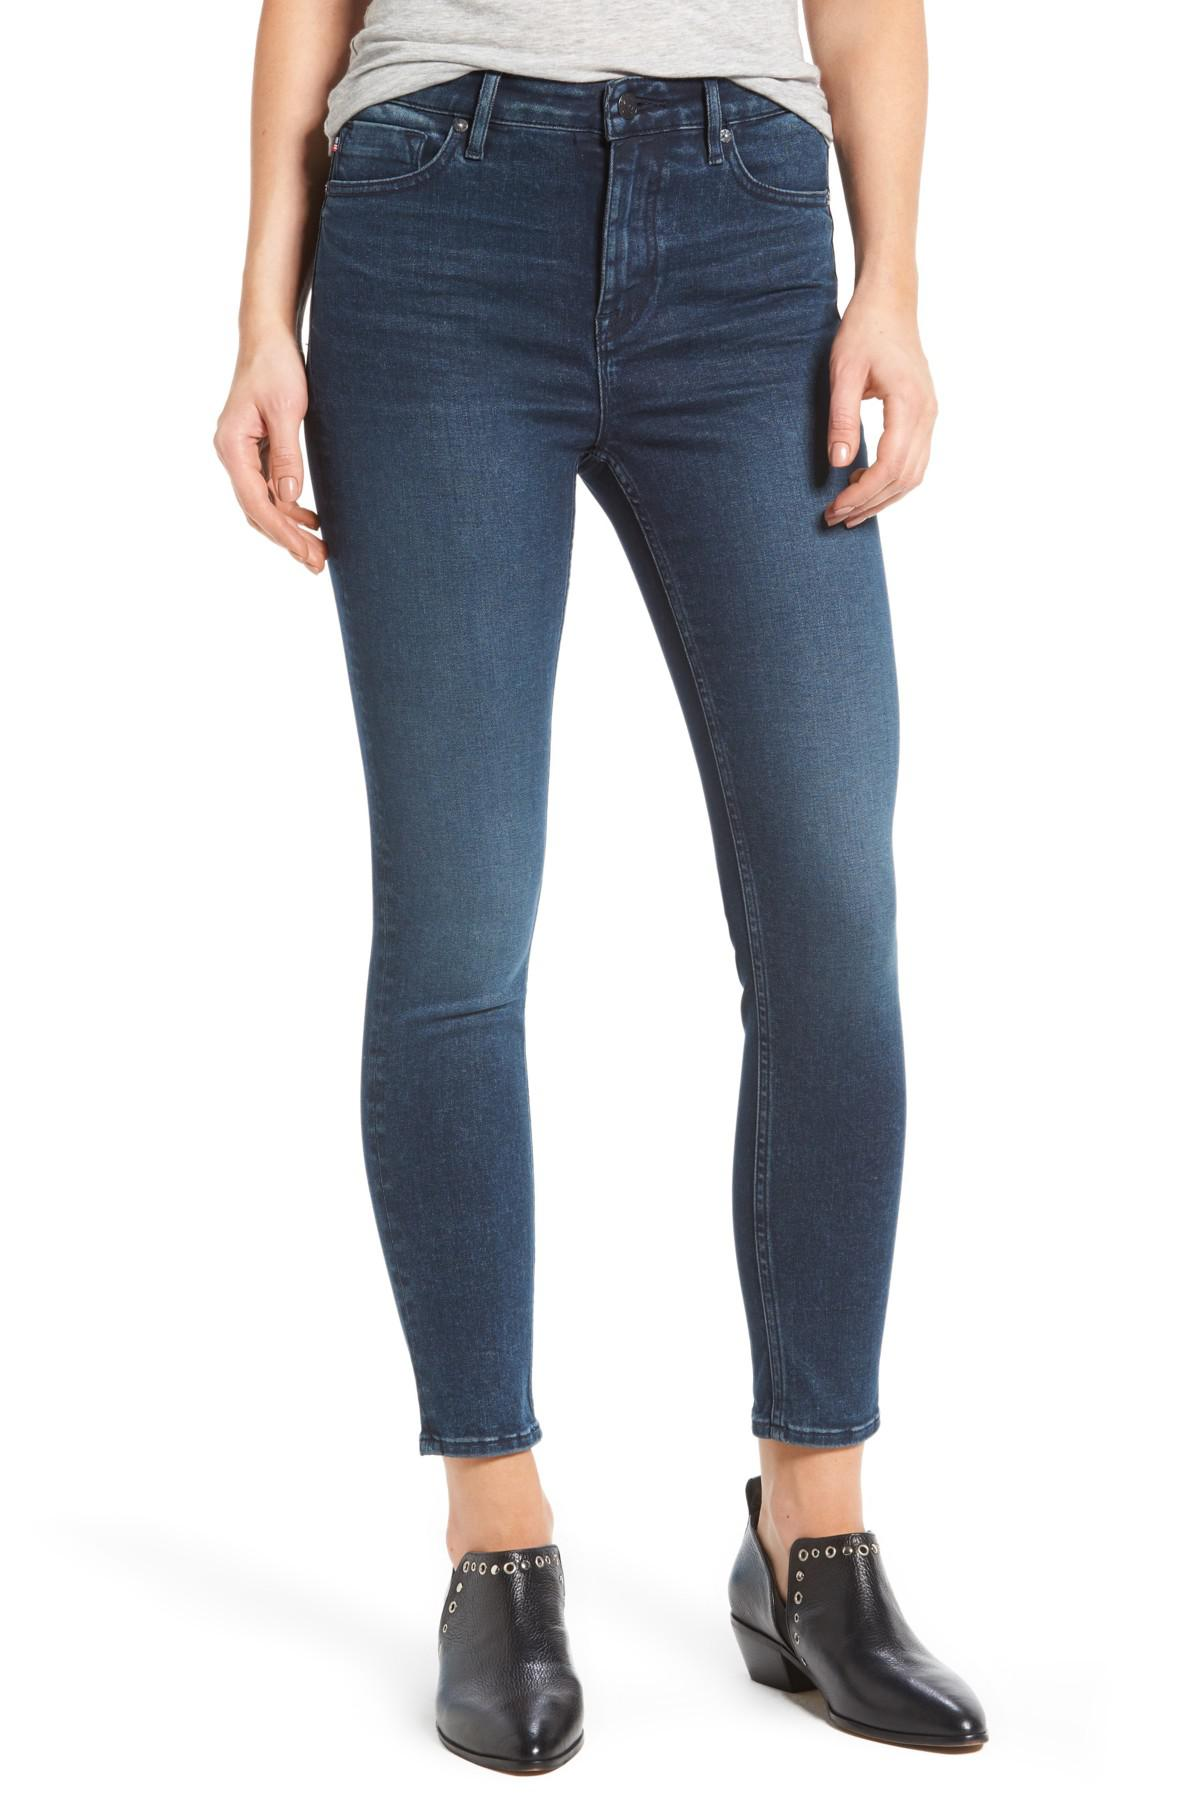 a795195ee0b Gallery. Previously sold at: Nordstrom, Nordstrom Rack · Women's High  Waisted Jeans